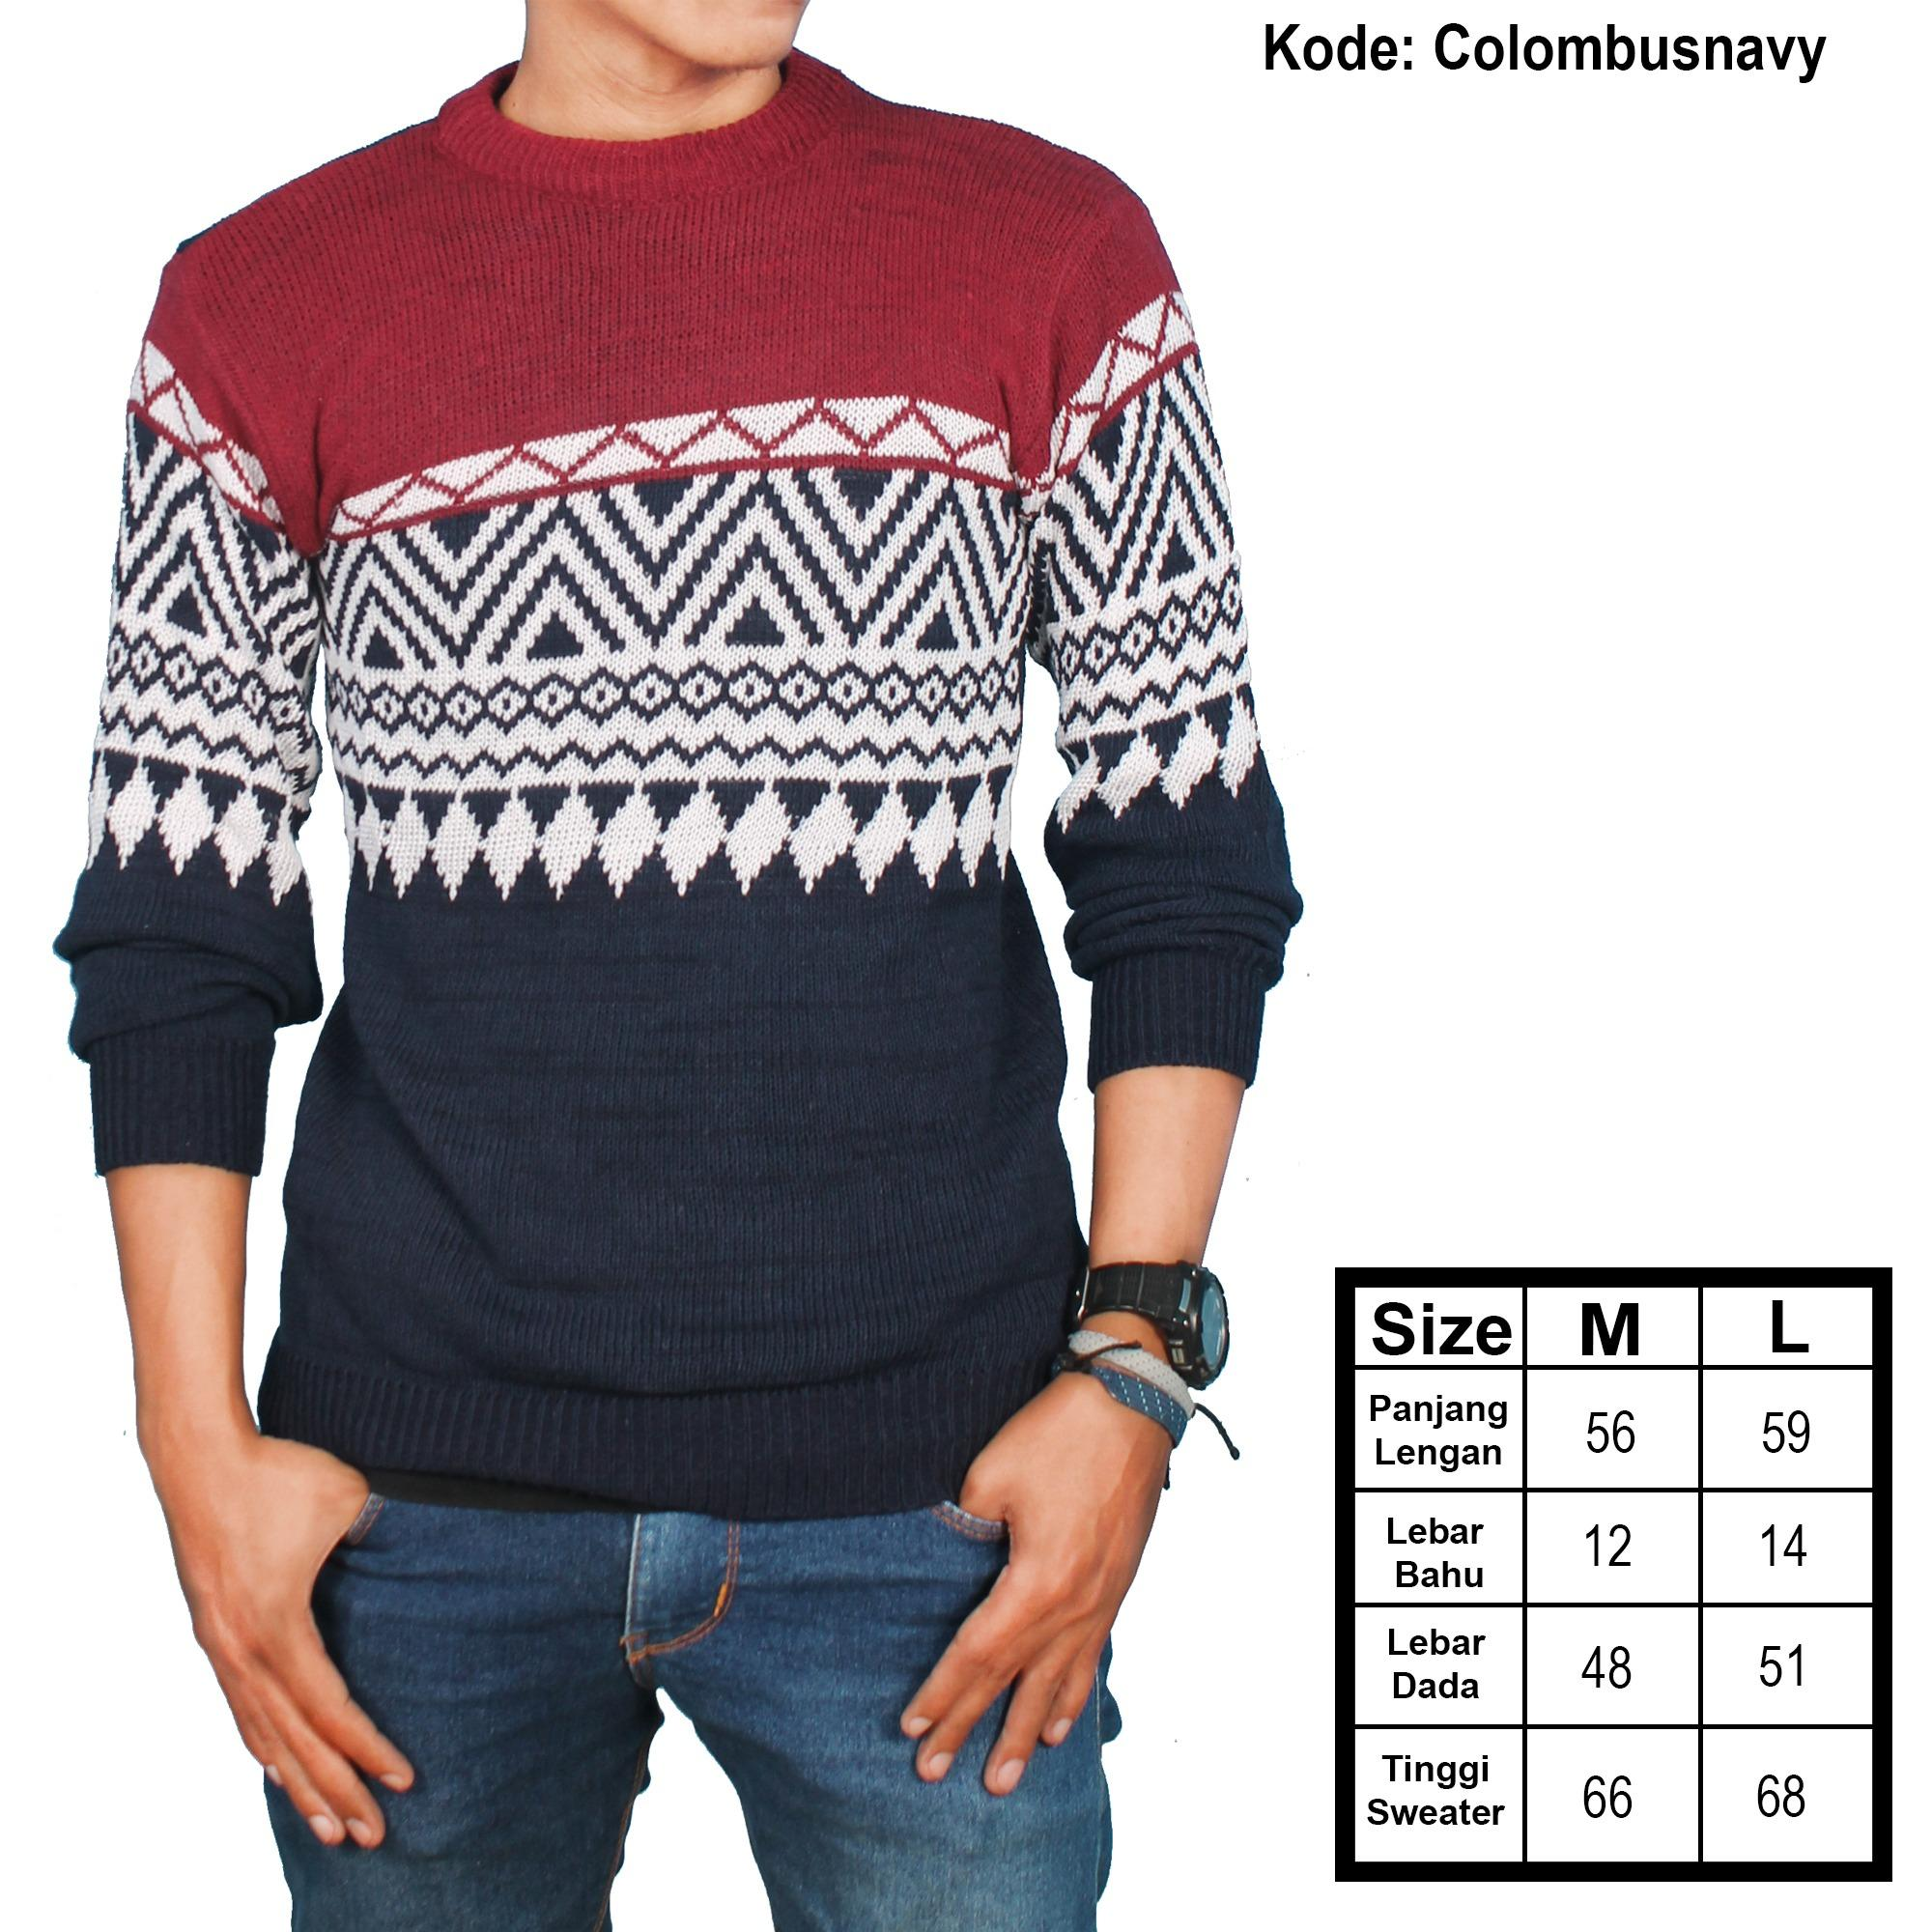 Jual Switer Rajut Colombus Tribal Branded